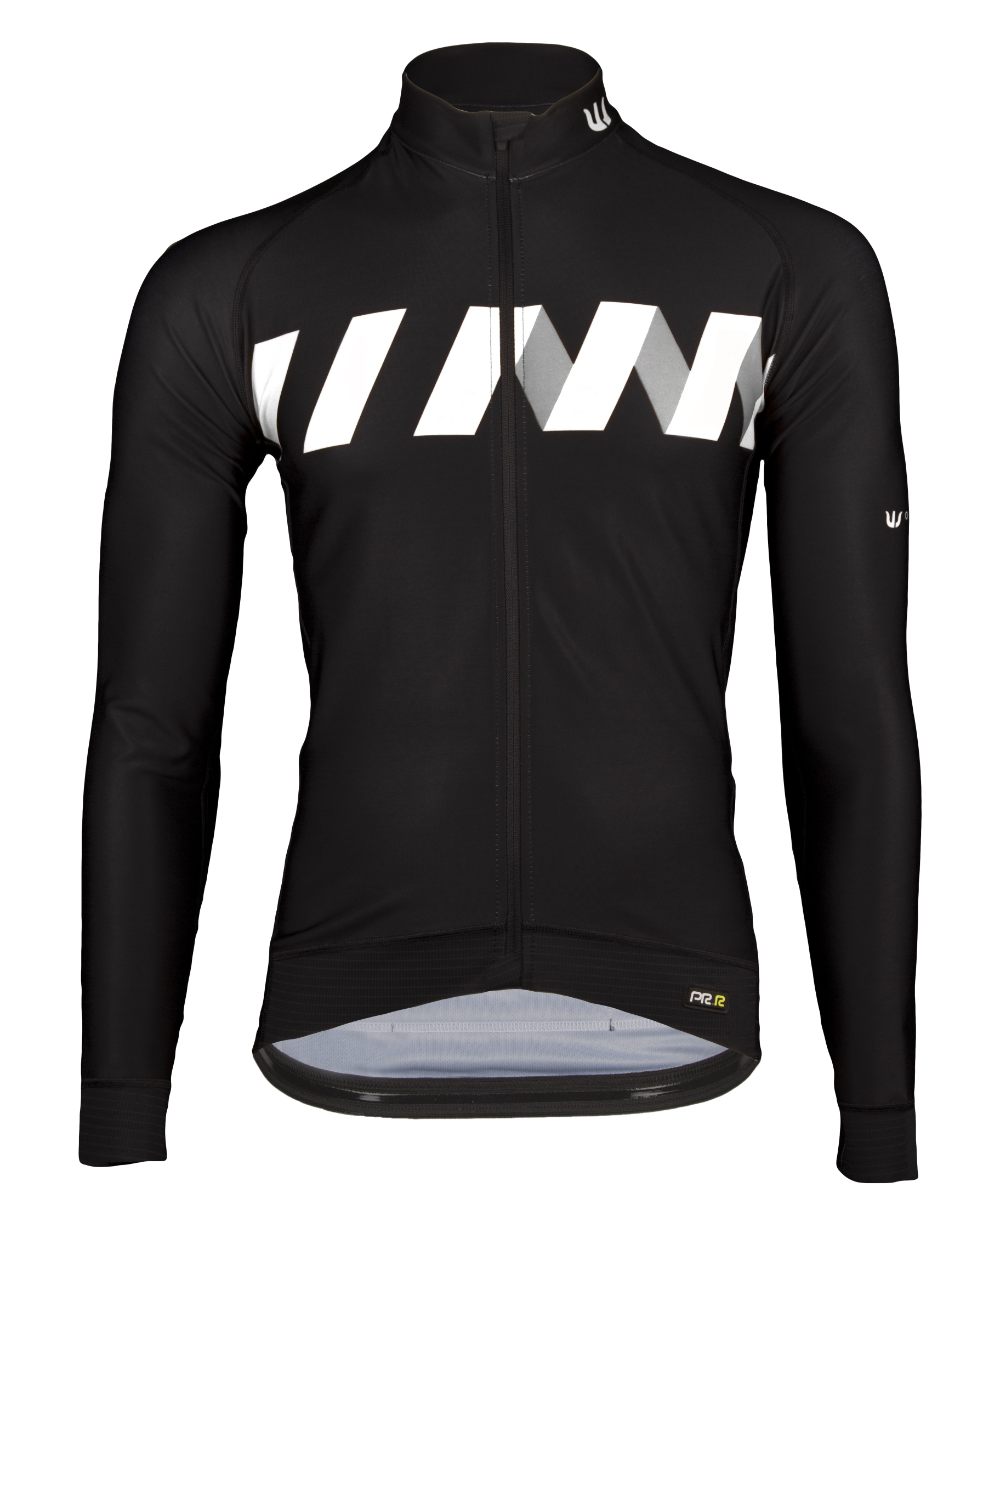 Vermarc winn jersey long sleeve black white in 2020 Long